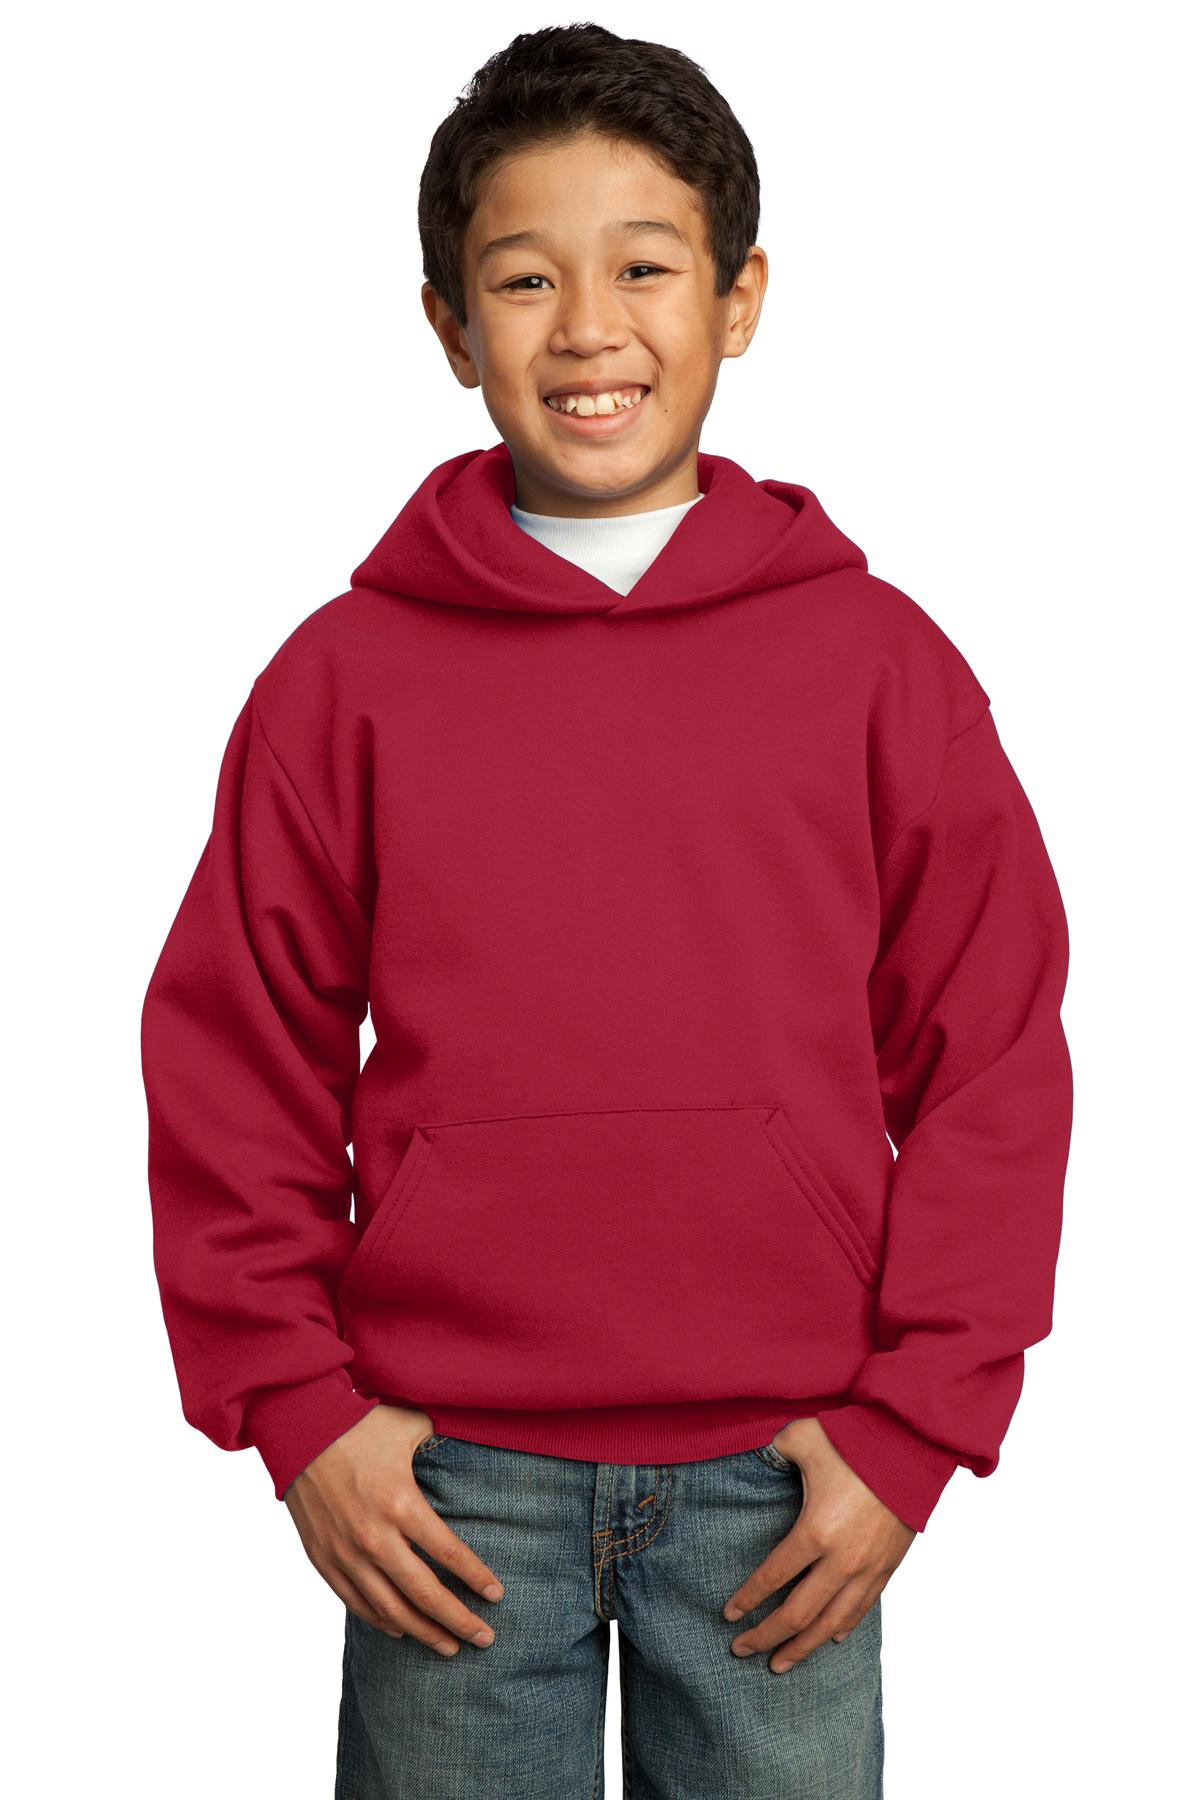 Port & Company ®  - Youth Core Fleece Pullover Hooded Sweatshirt.  PC90YH - Red